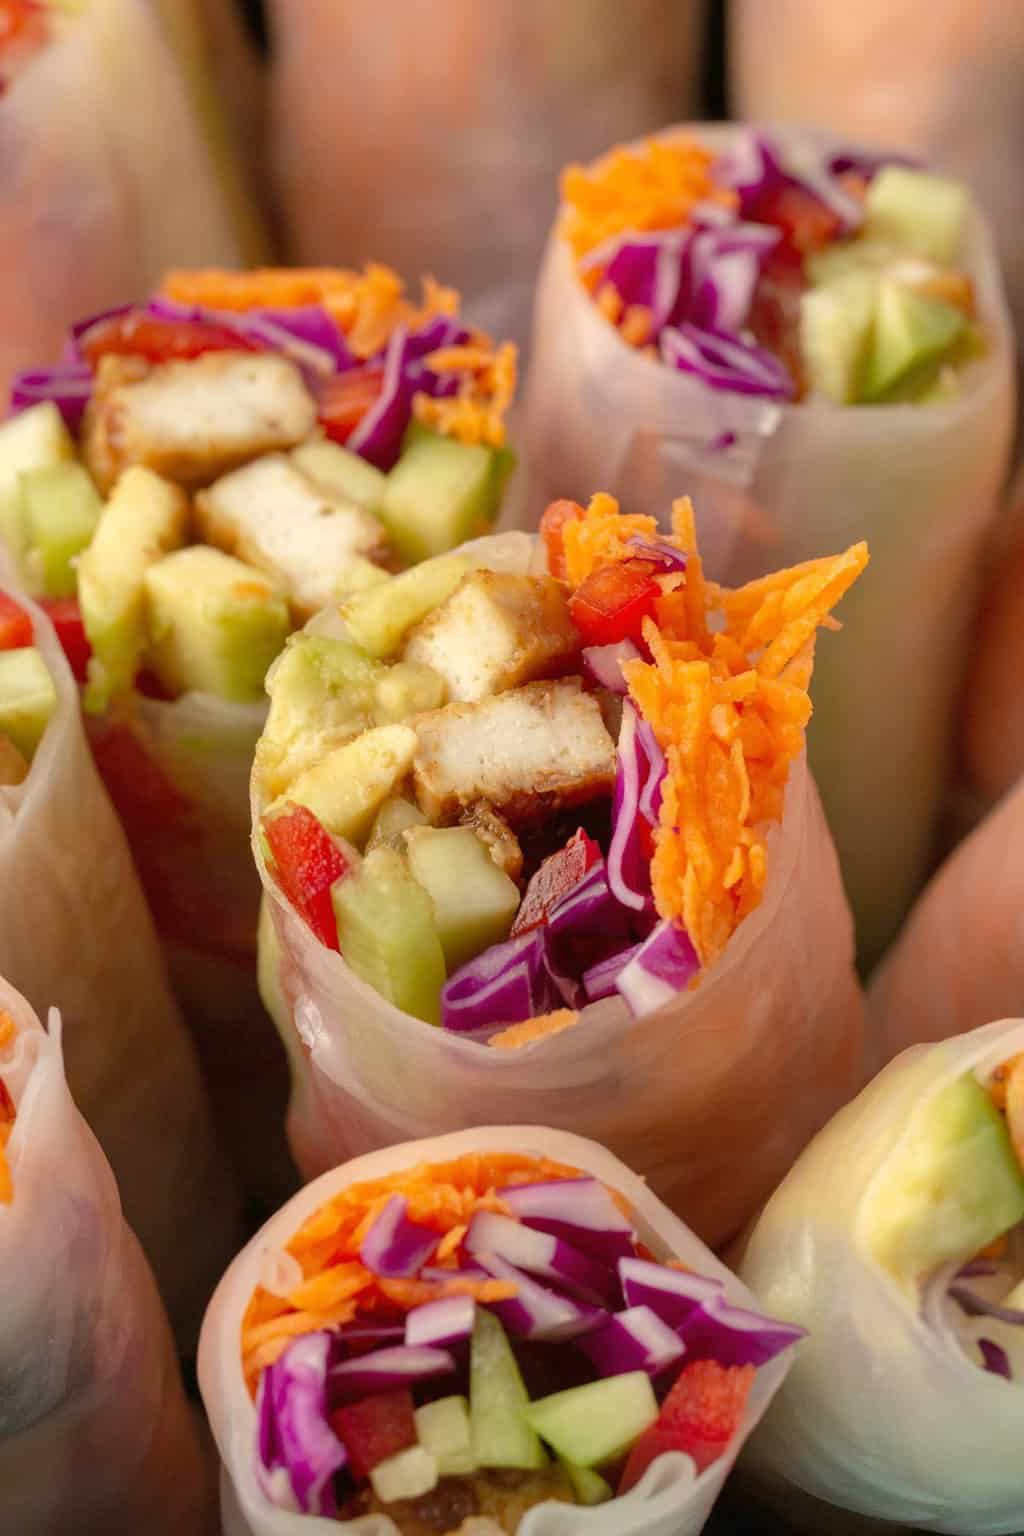 Vegan spring rolls with tofu and veggies standing upright in a black bowl.